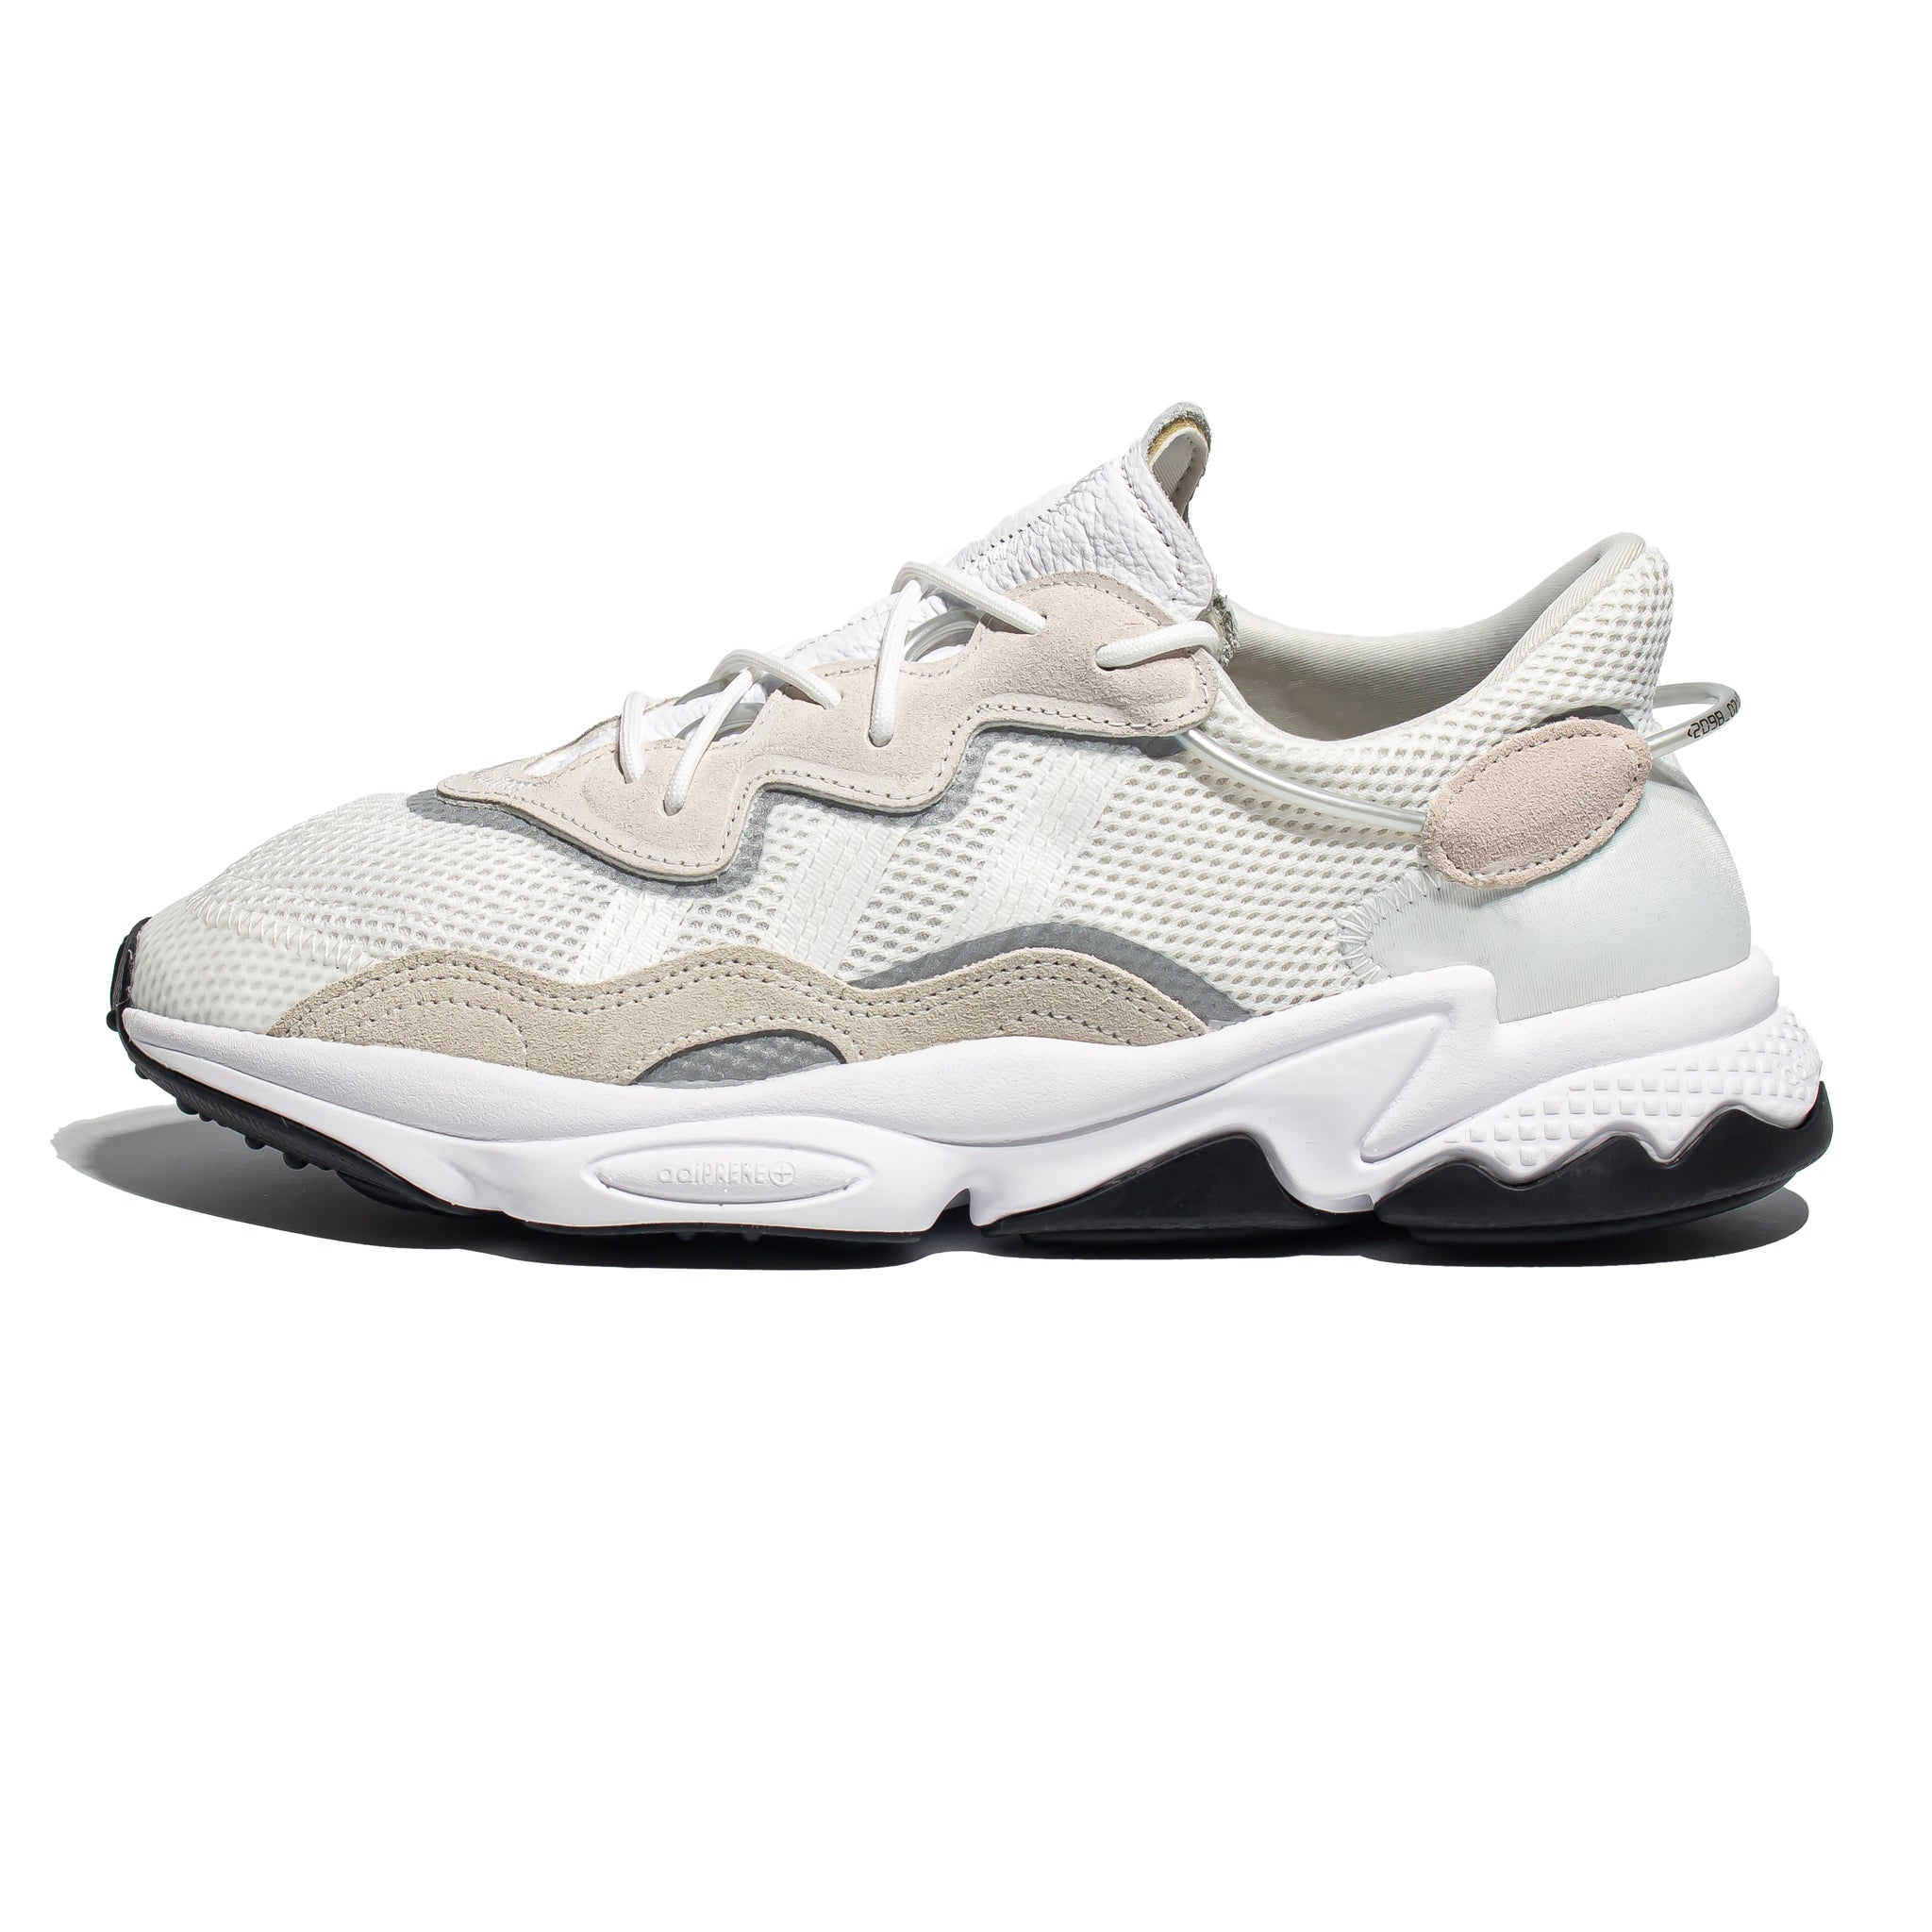 Adidas Ozweego Cloud White/Cloud White